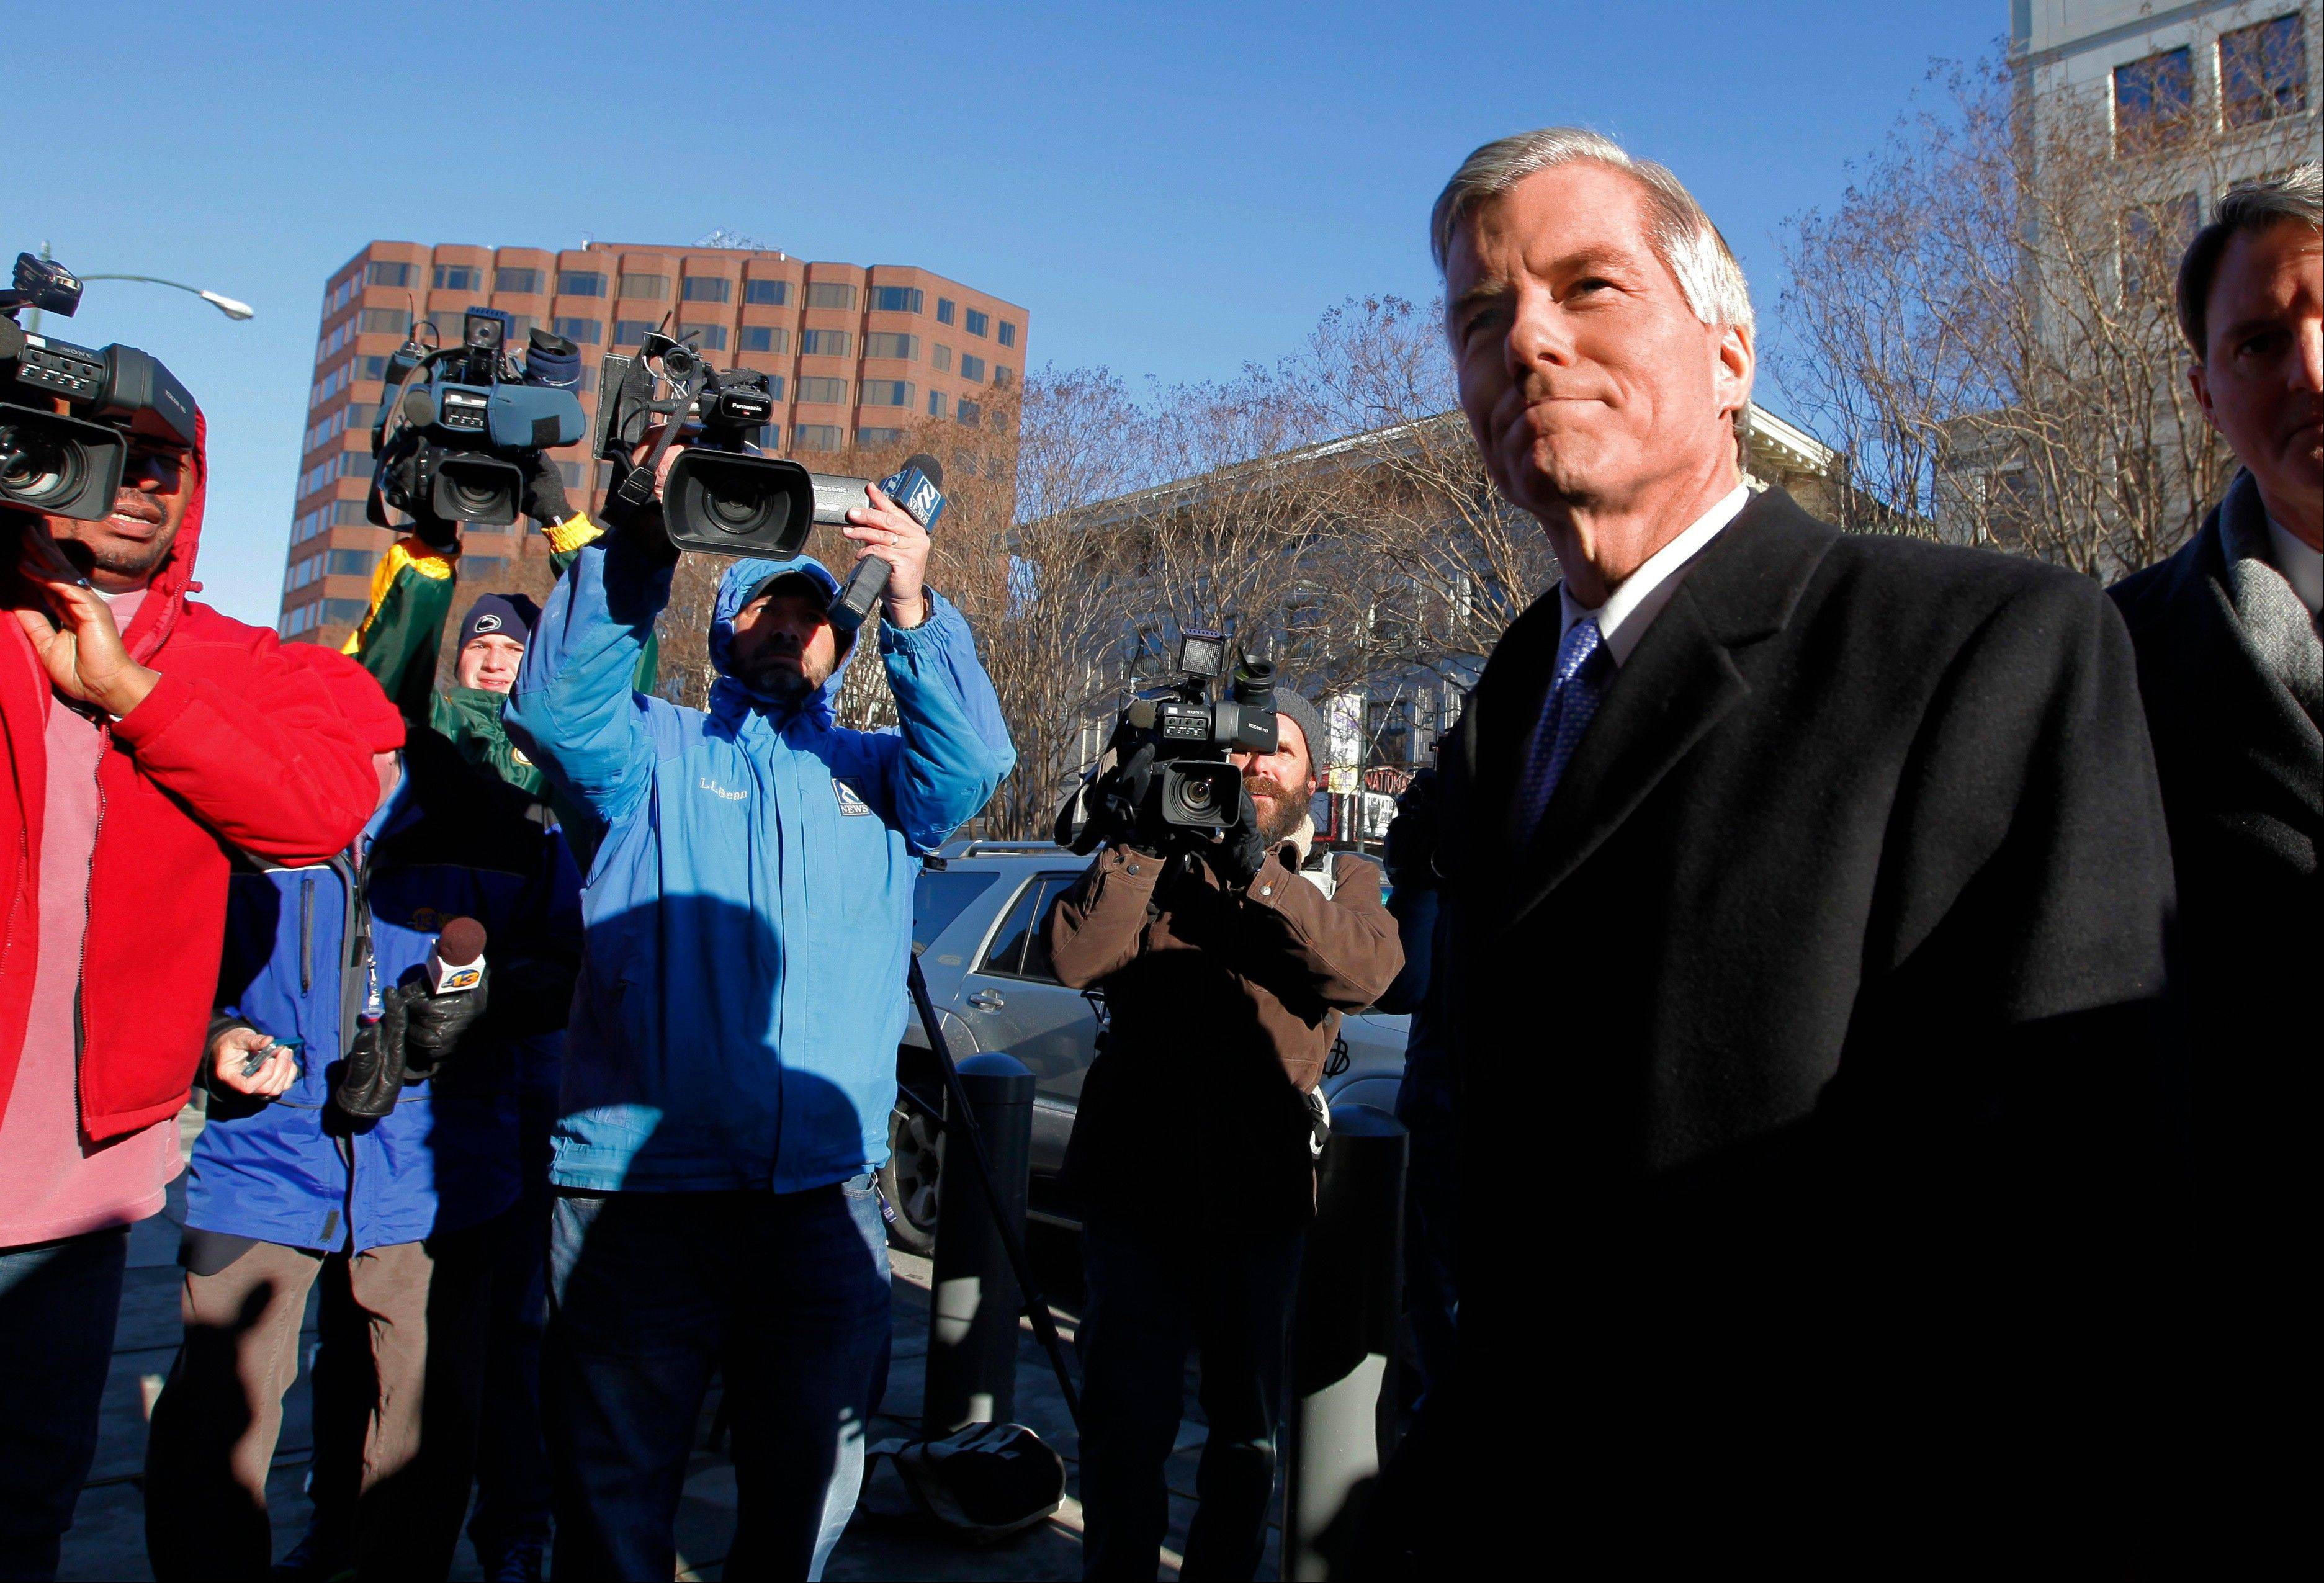 Former Va. Governor Bob McDonnell, right, surrounded by news cameras, enters U.S. District Court in Richmond, Va. for his and his wife Maureen's bond hearing and arraignment on Friday, Jan. 24, 2014 on federal corruption charges. The McDonnells, flanked by their children, did not comment as they entered the courthouse.